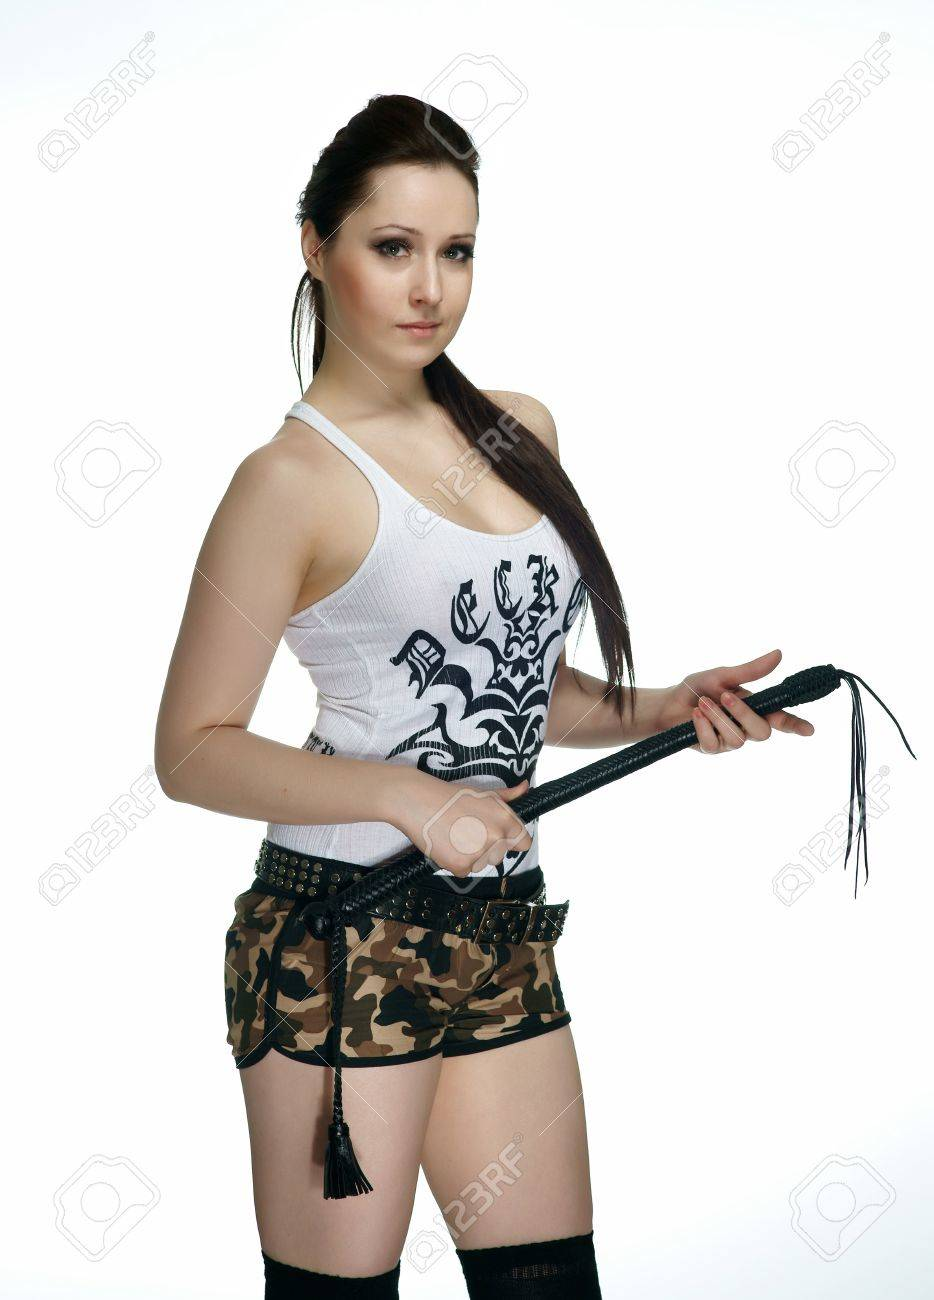 Girl with whip as weapon